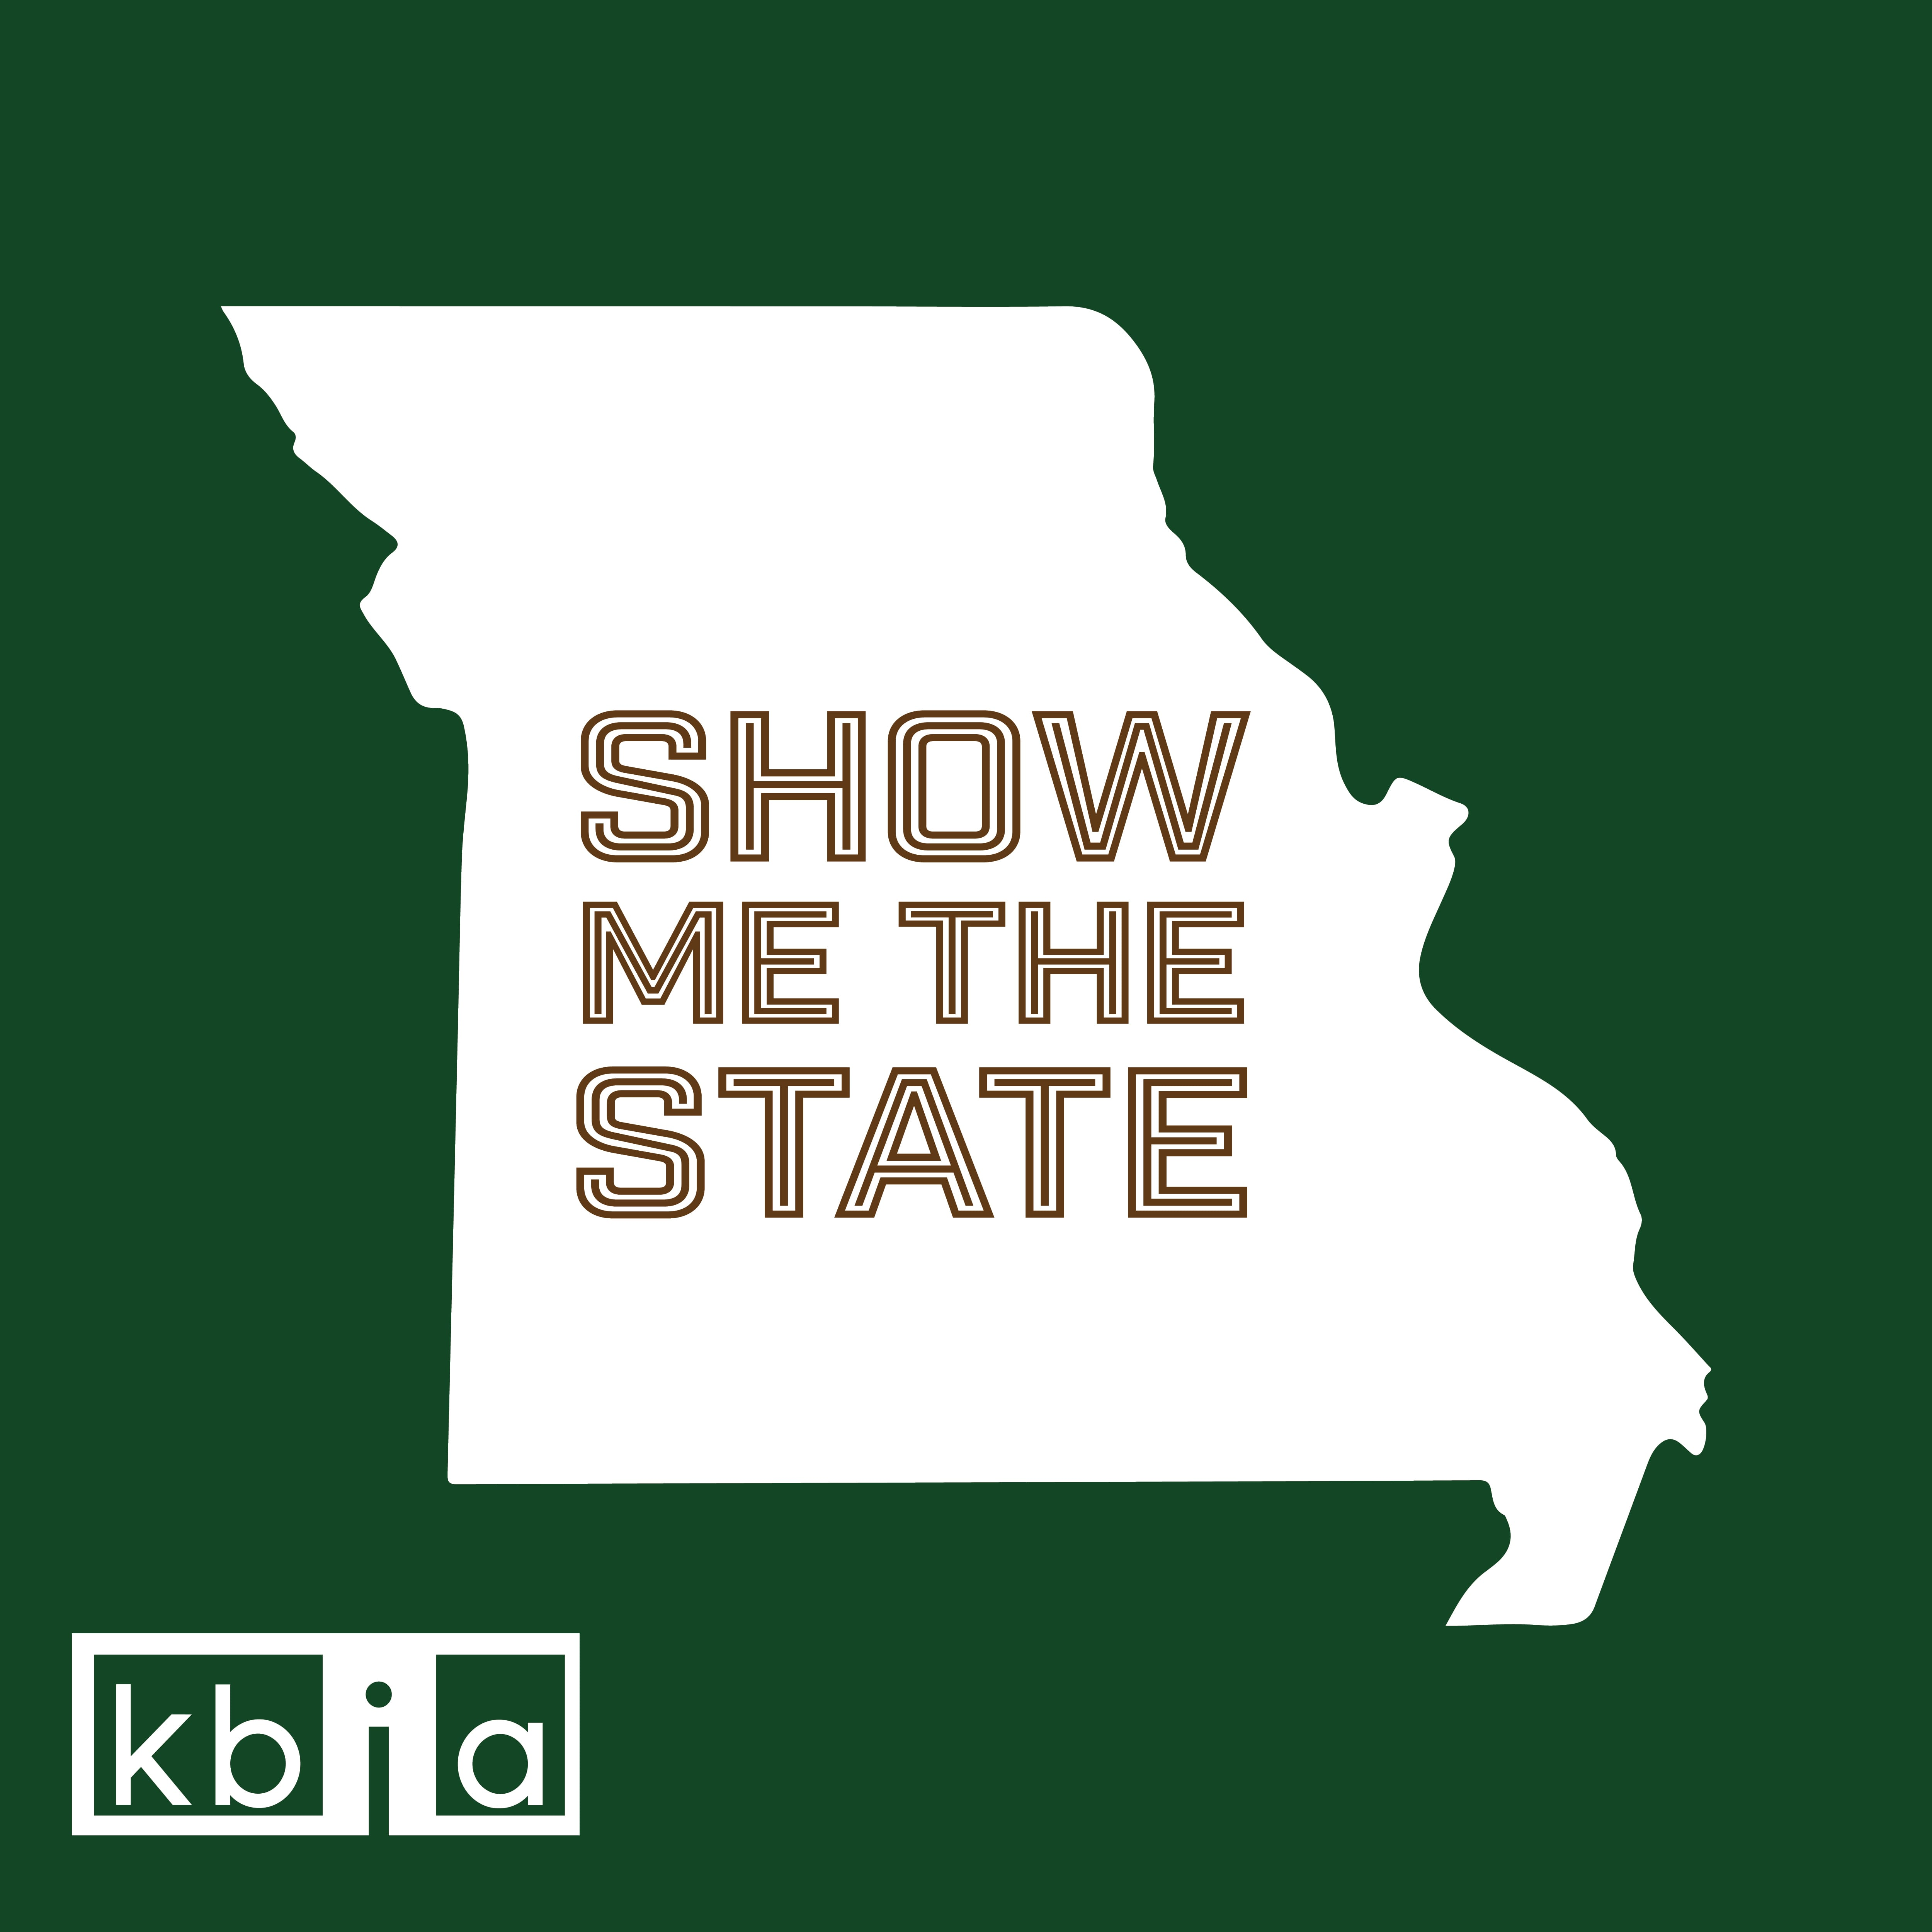 Show Me The State album art.